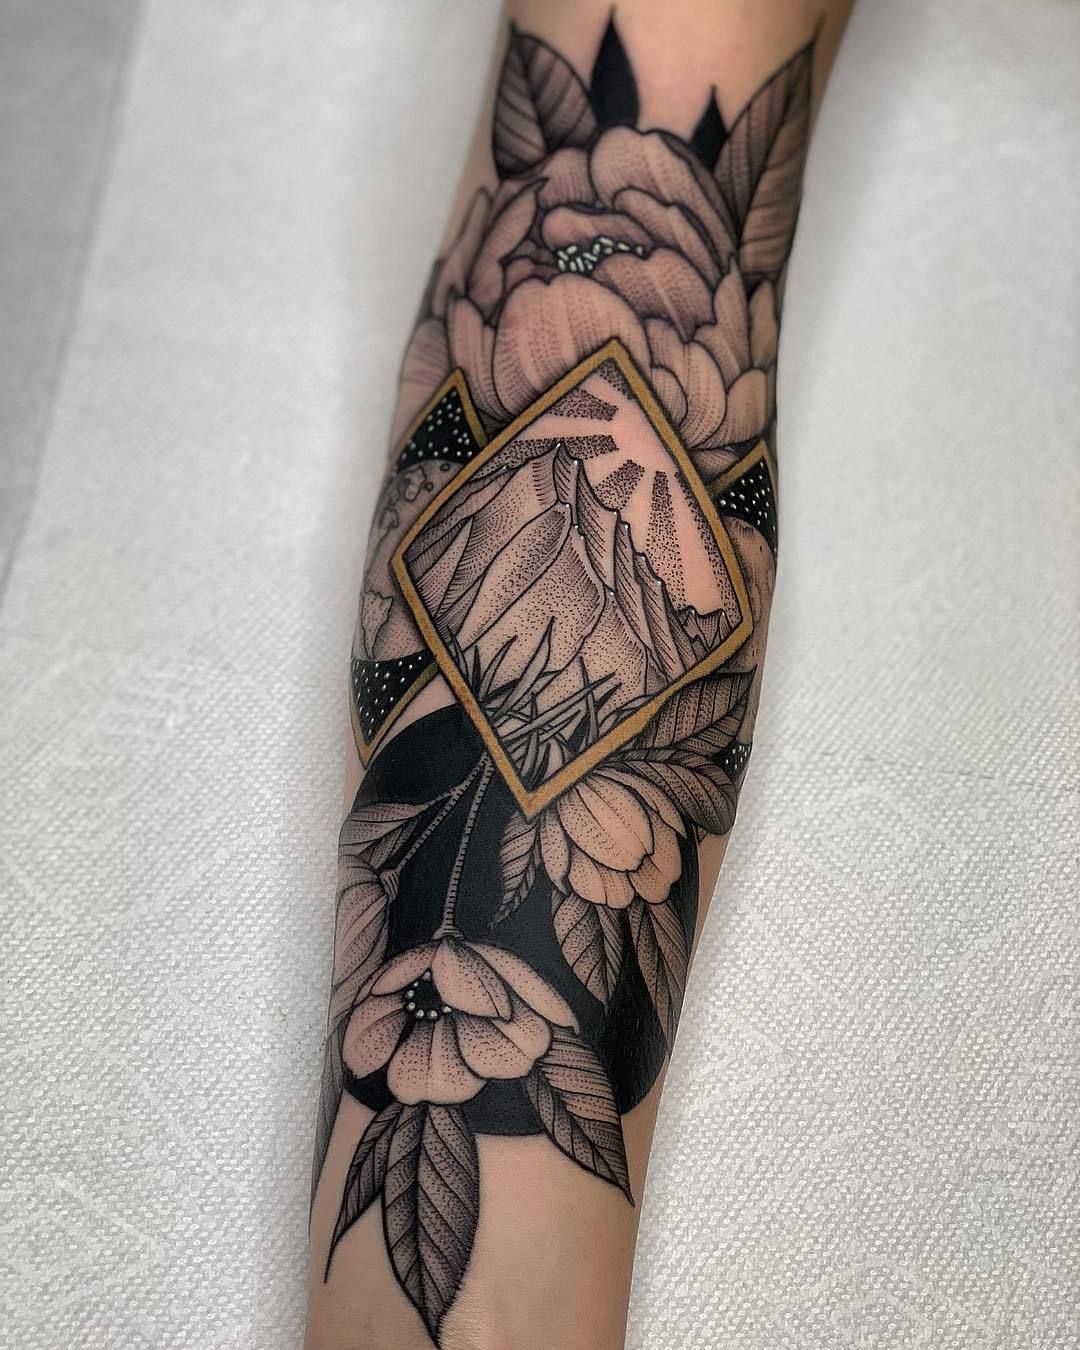 Electrictattoos in 2020 sleeve tattoos for women unique